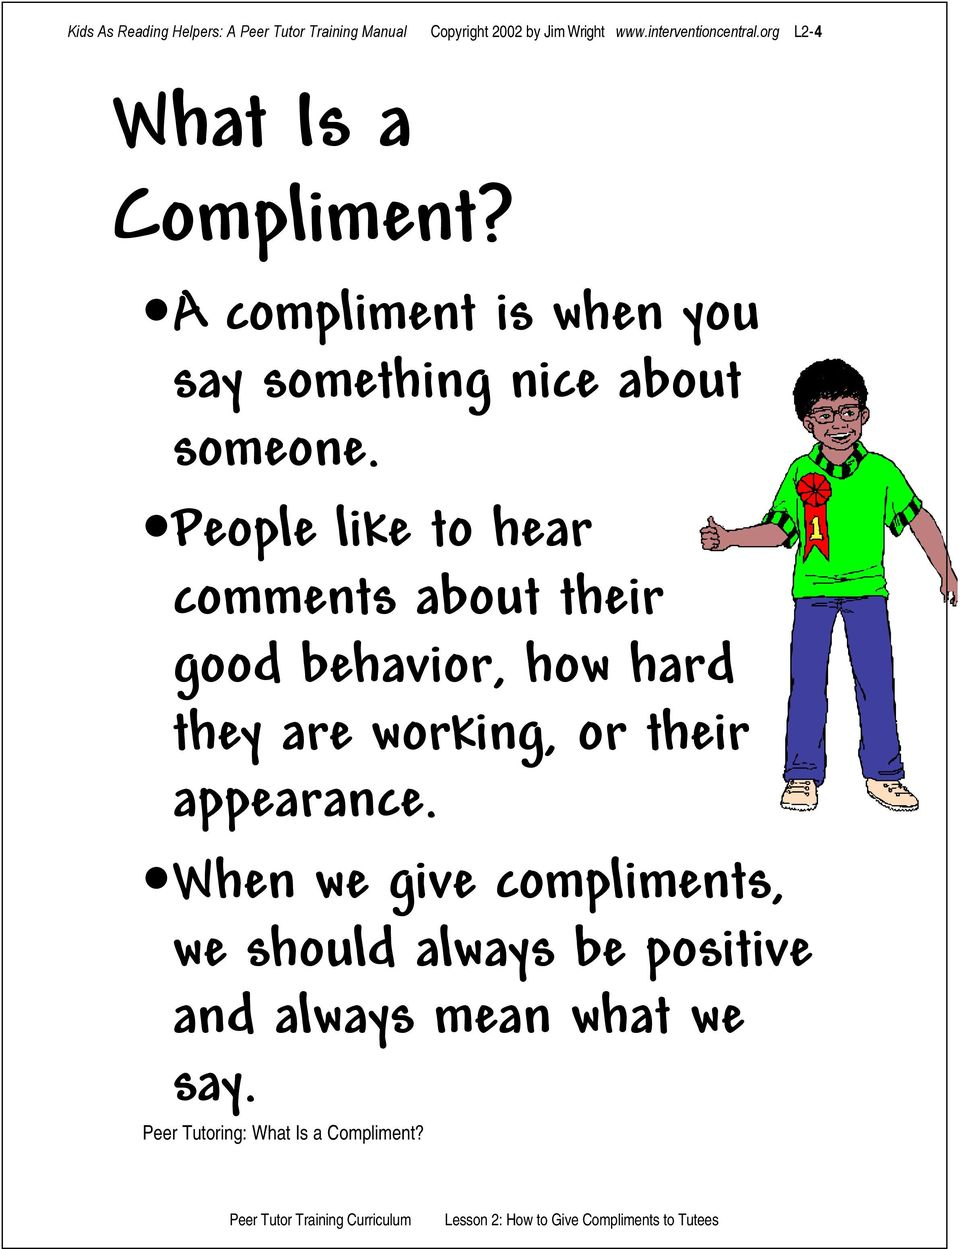 A compliment is when you say something nice about someone.